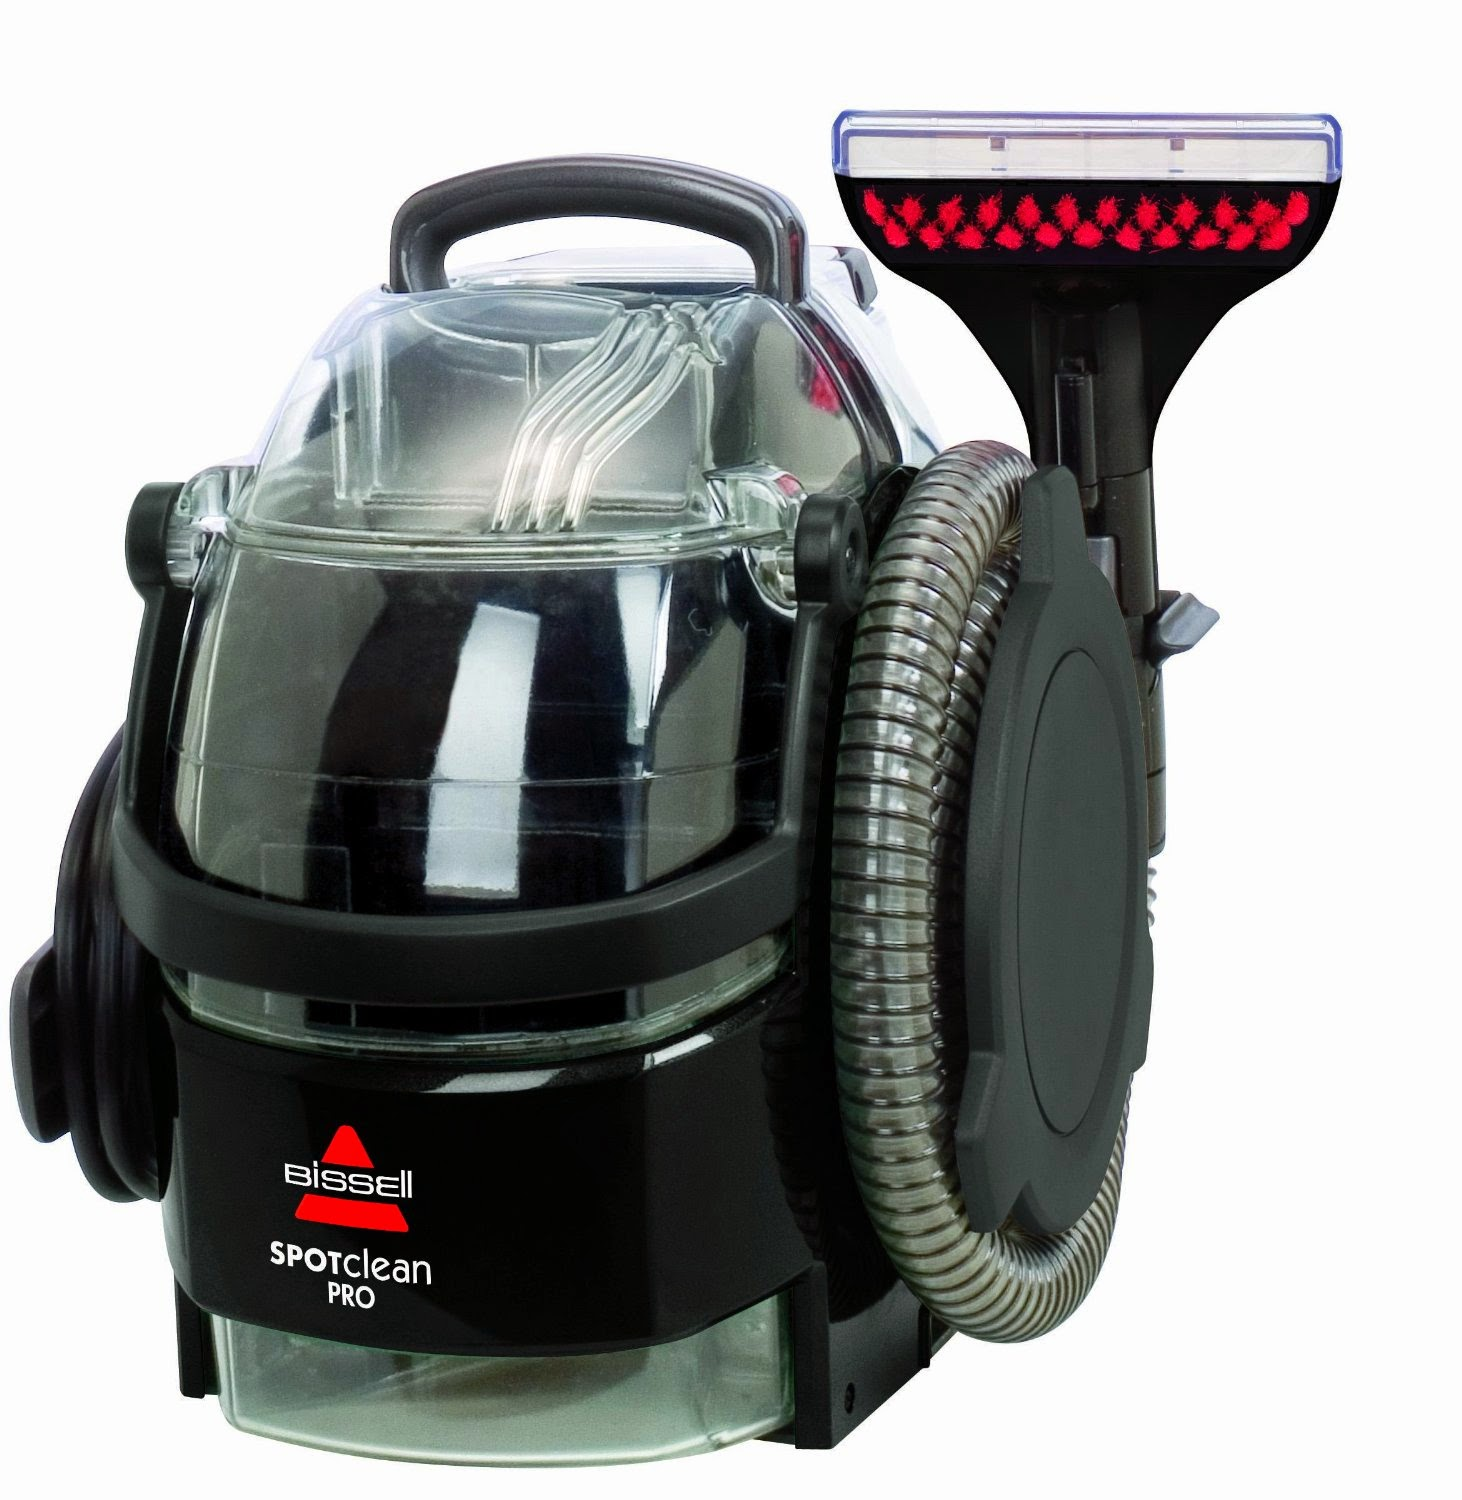 portable bissell green machine carpet cleaner - Green Machine Carpet Cleaner